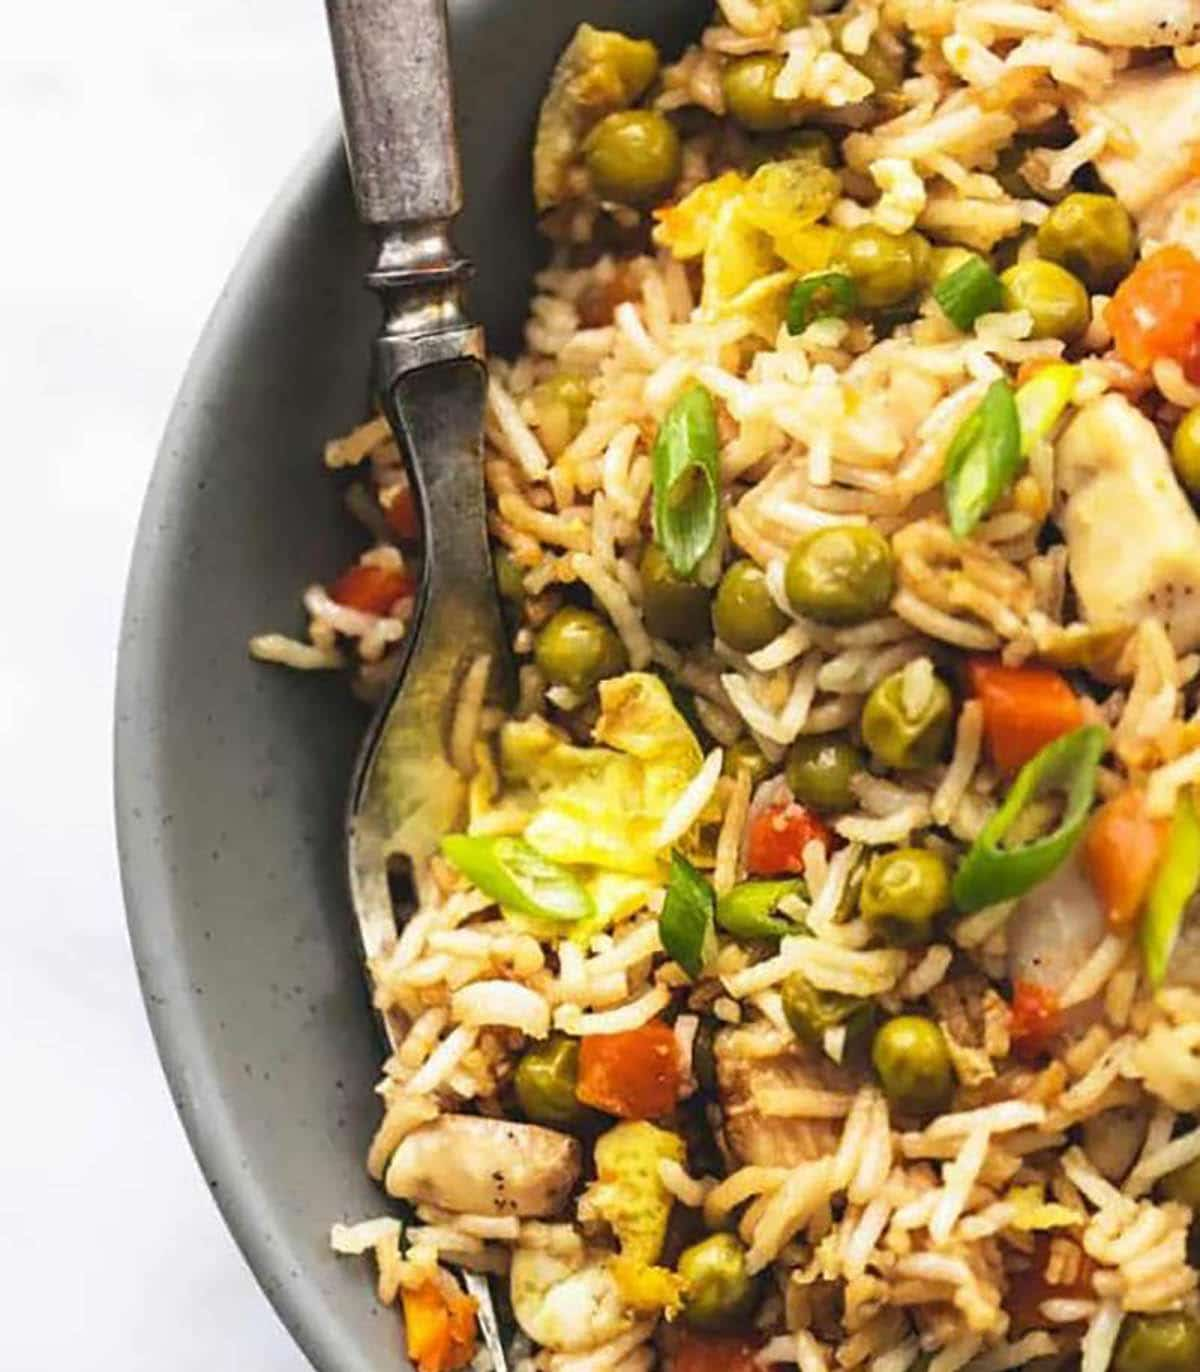 Sheet Pan Chicken Fried Rice topped with green peas and green onions